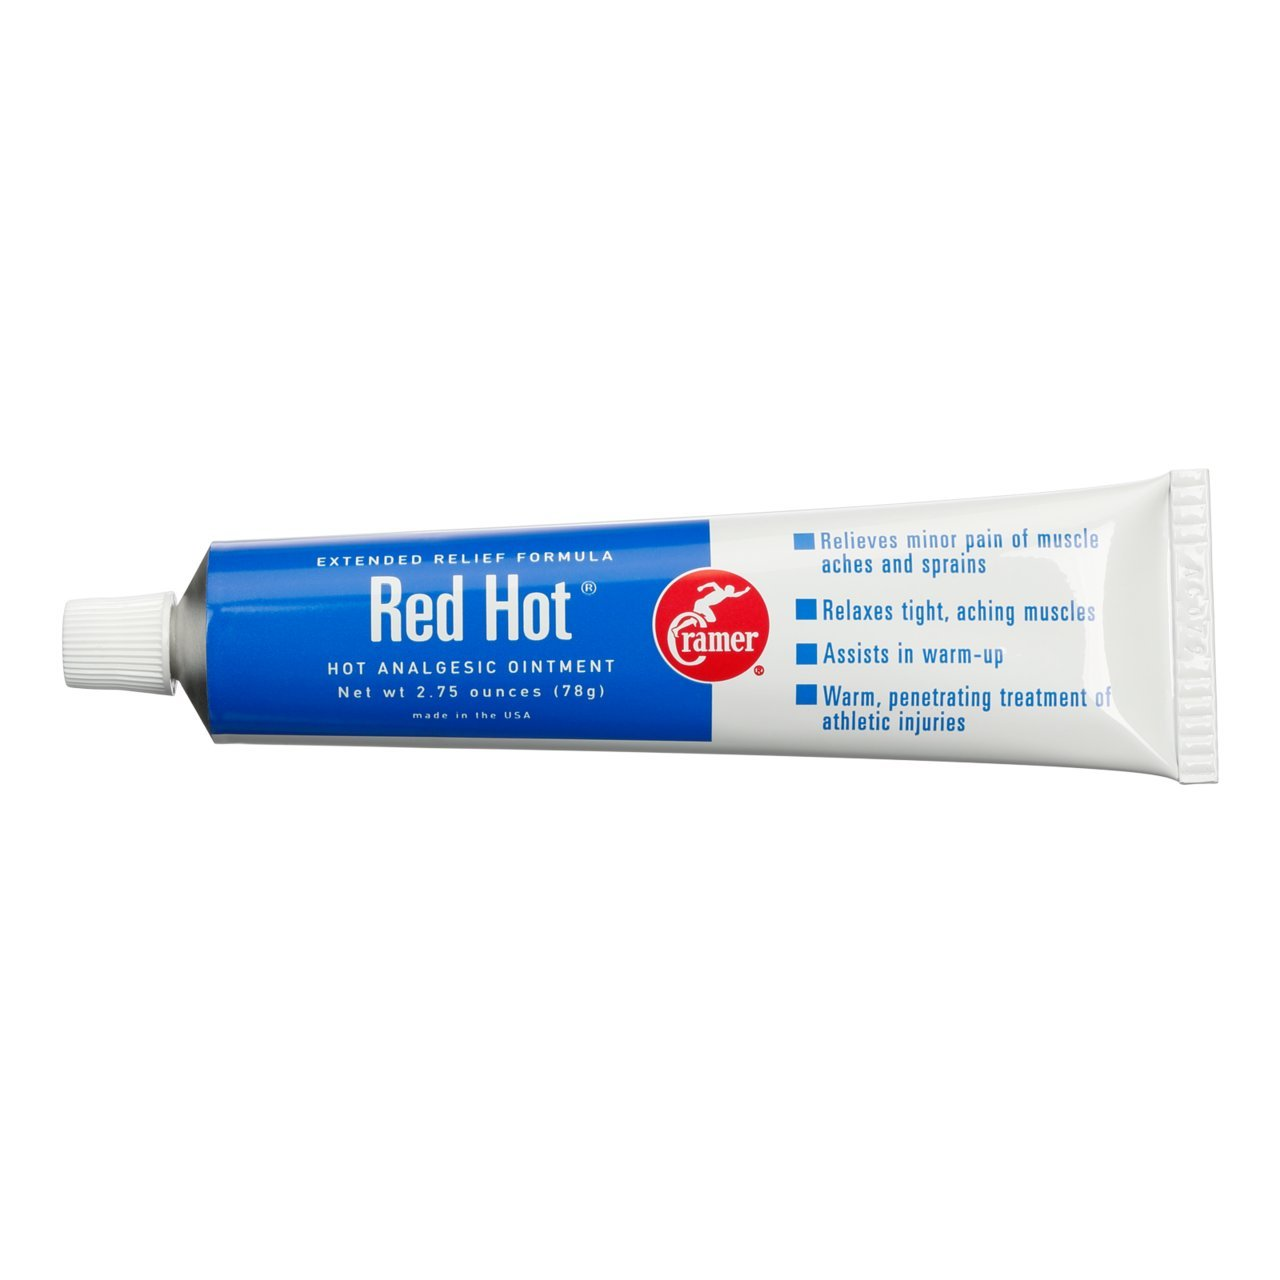 Cramer Red Hot Ointment for Muscle & Joint Pain Relief & Sore Muscles, Penetrating Warming Heat Therapy Cream for Warm-Up, Recovery, Athletes, Athletic Trainers, Arthritis, Tendonitis by Cramer